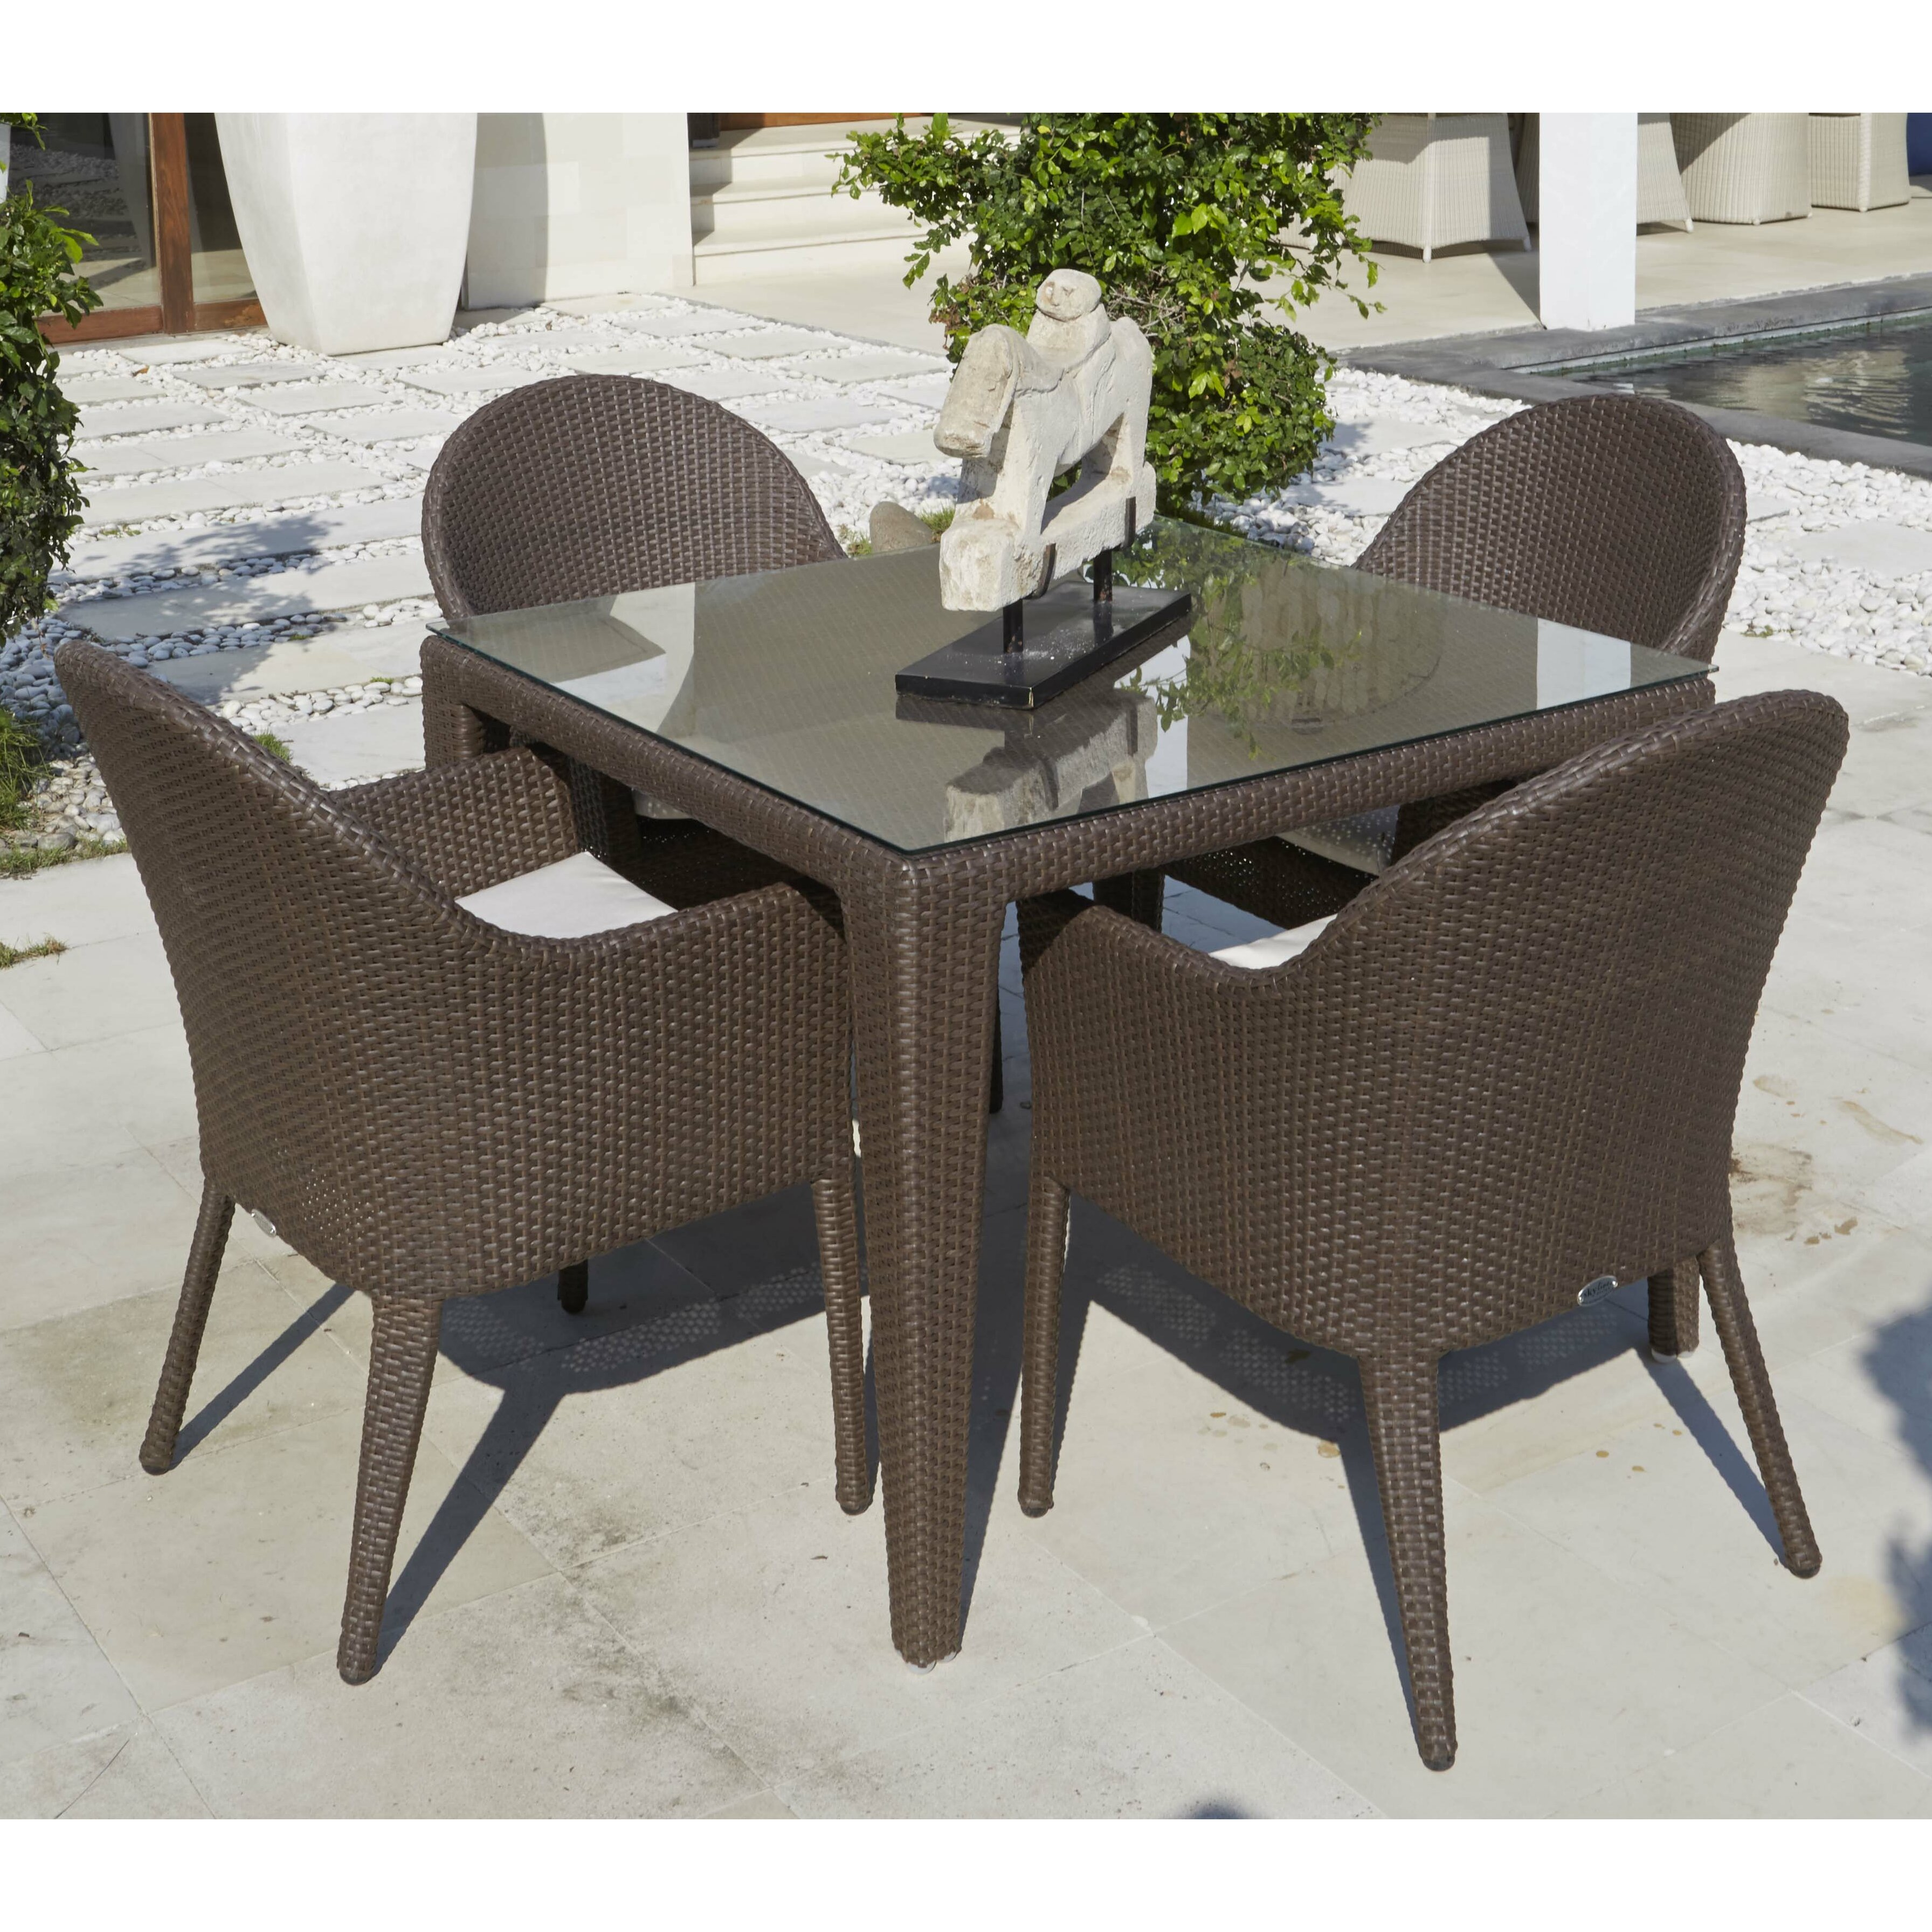 Hospitality rattan kenya piece dining set with cushions